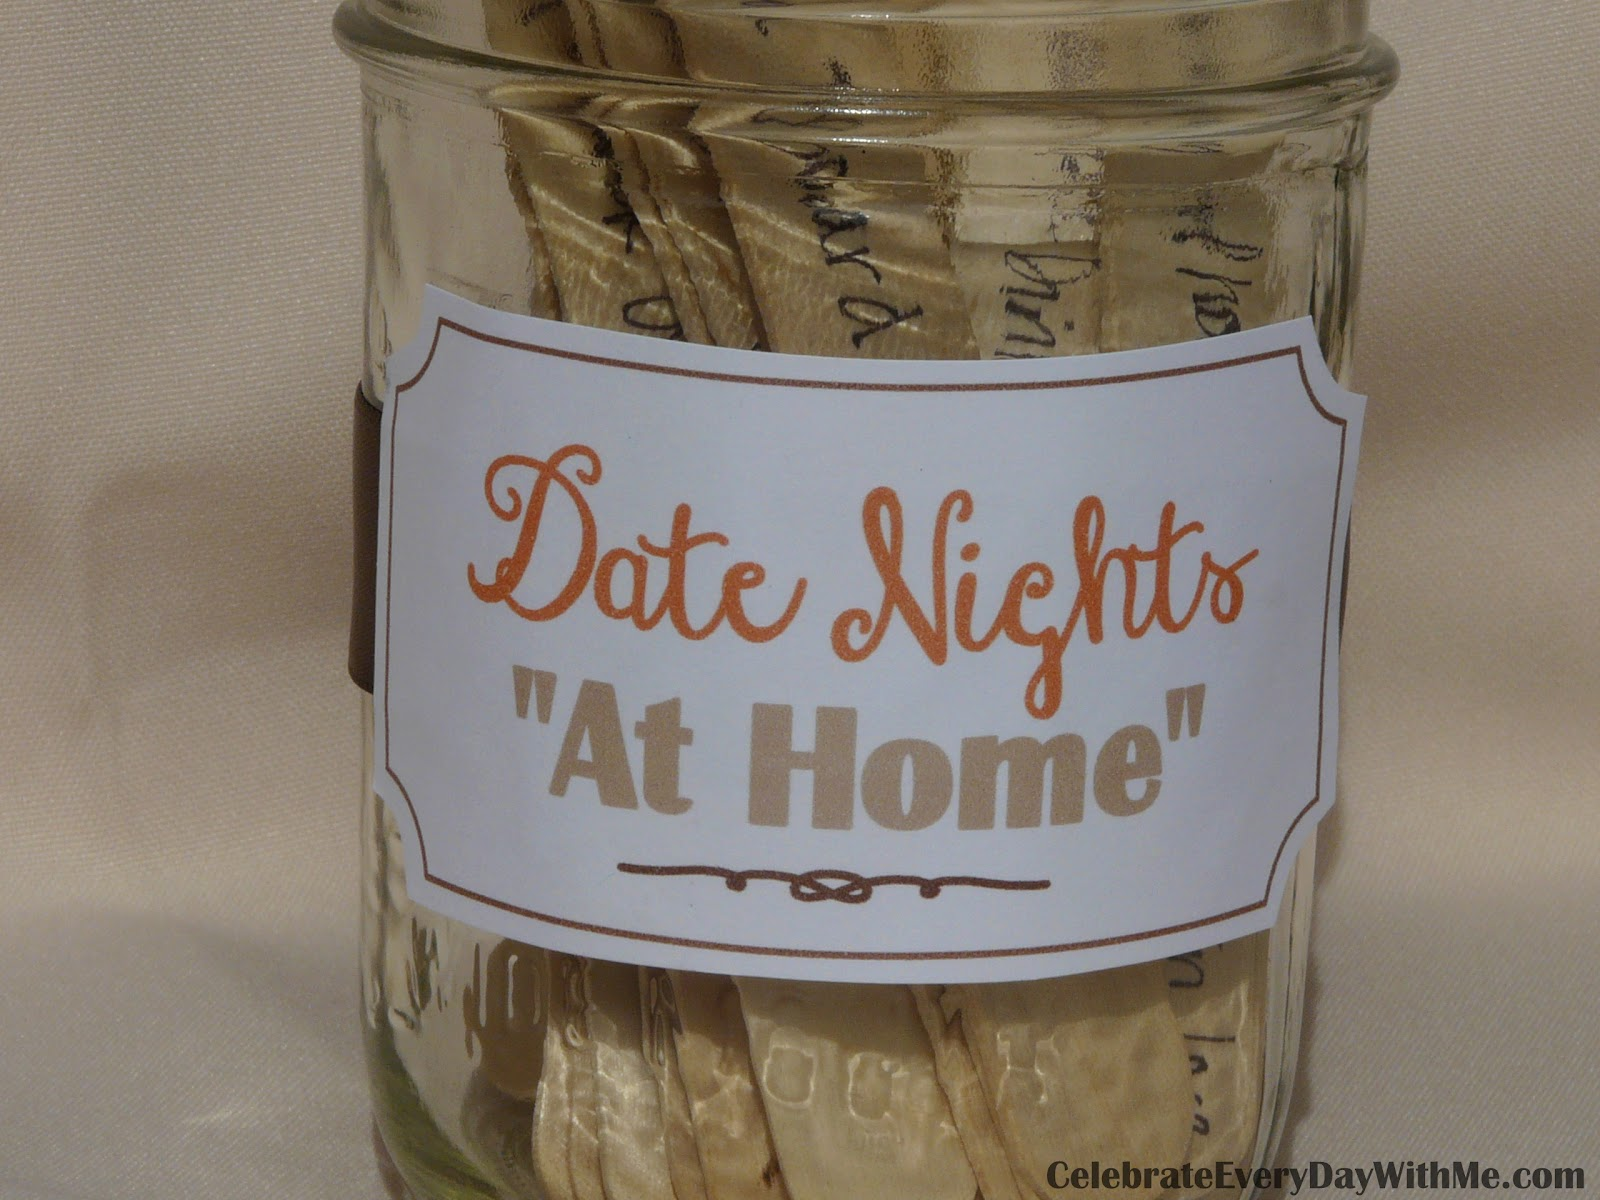 ... are some of the date nights that we have successfully done at home